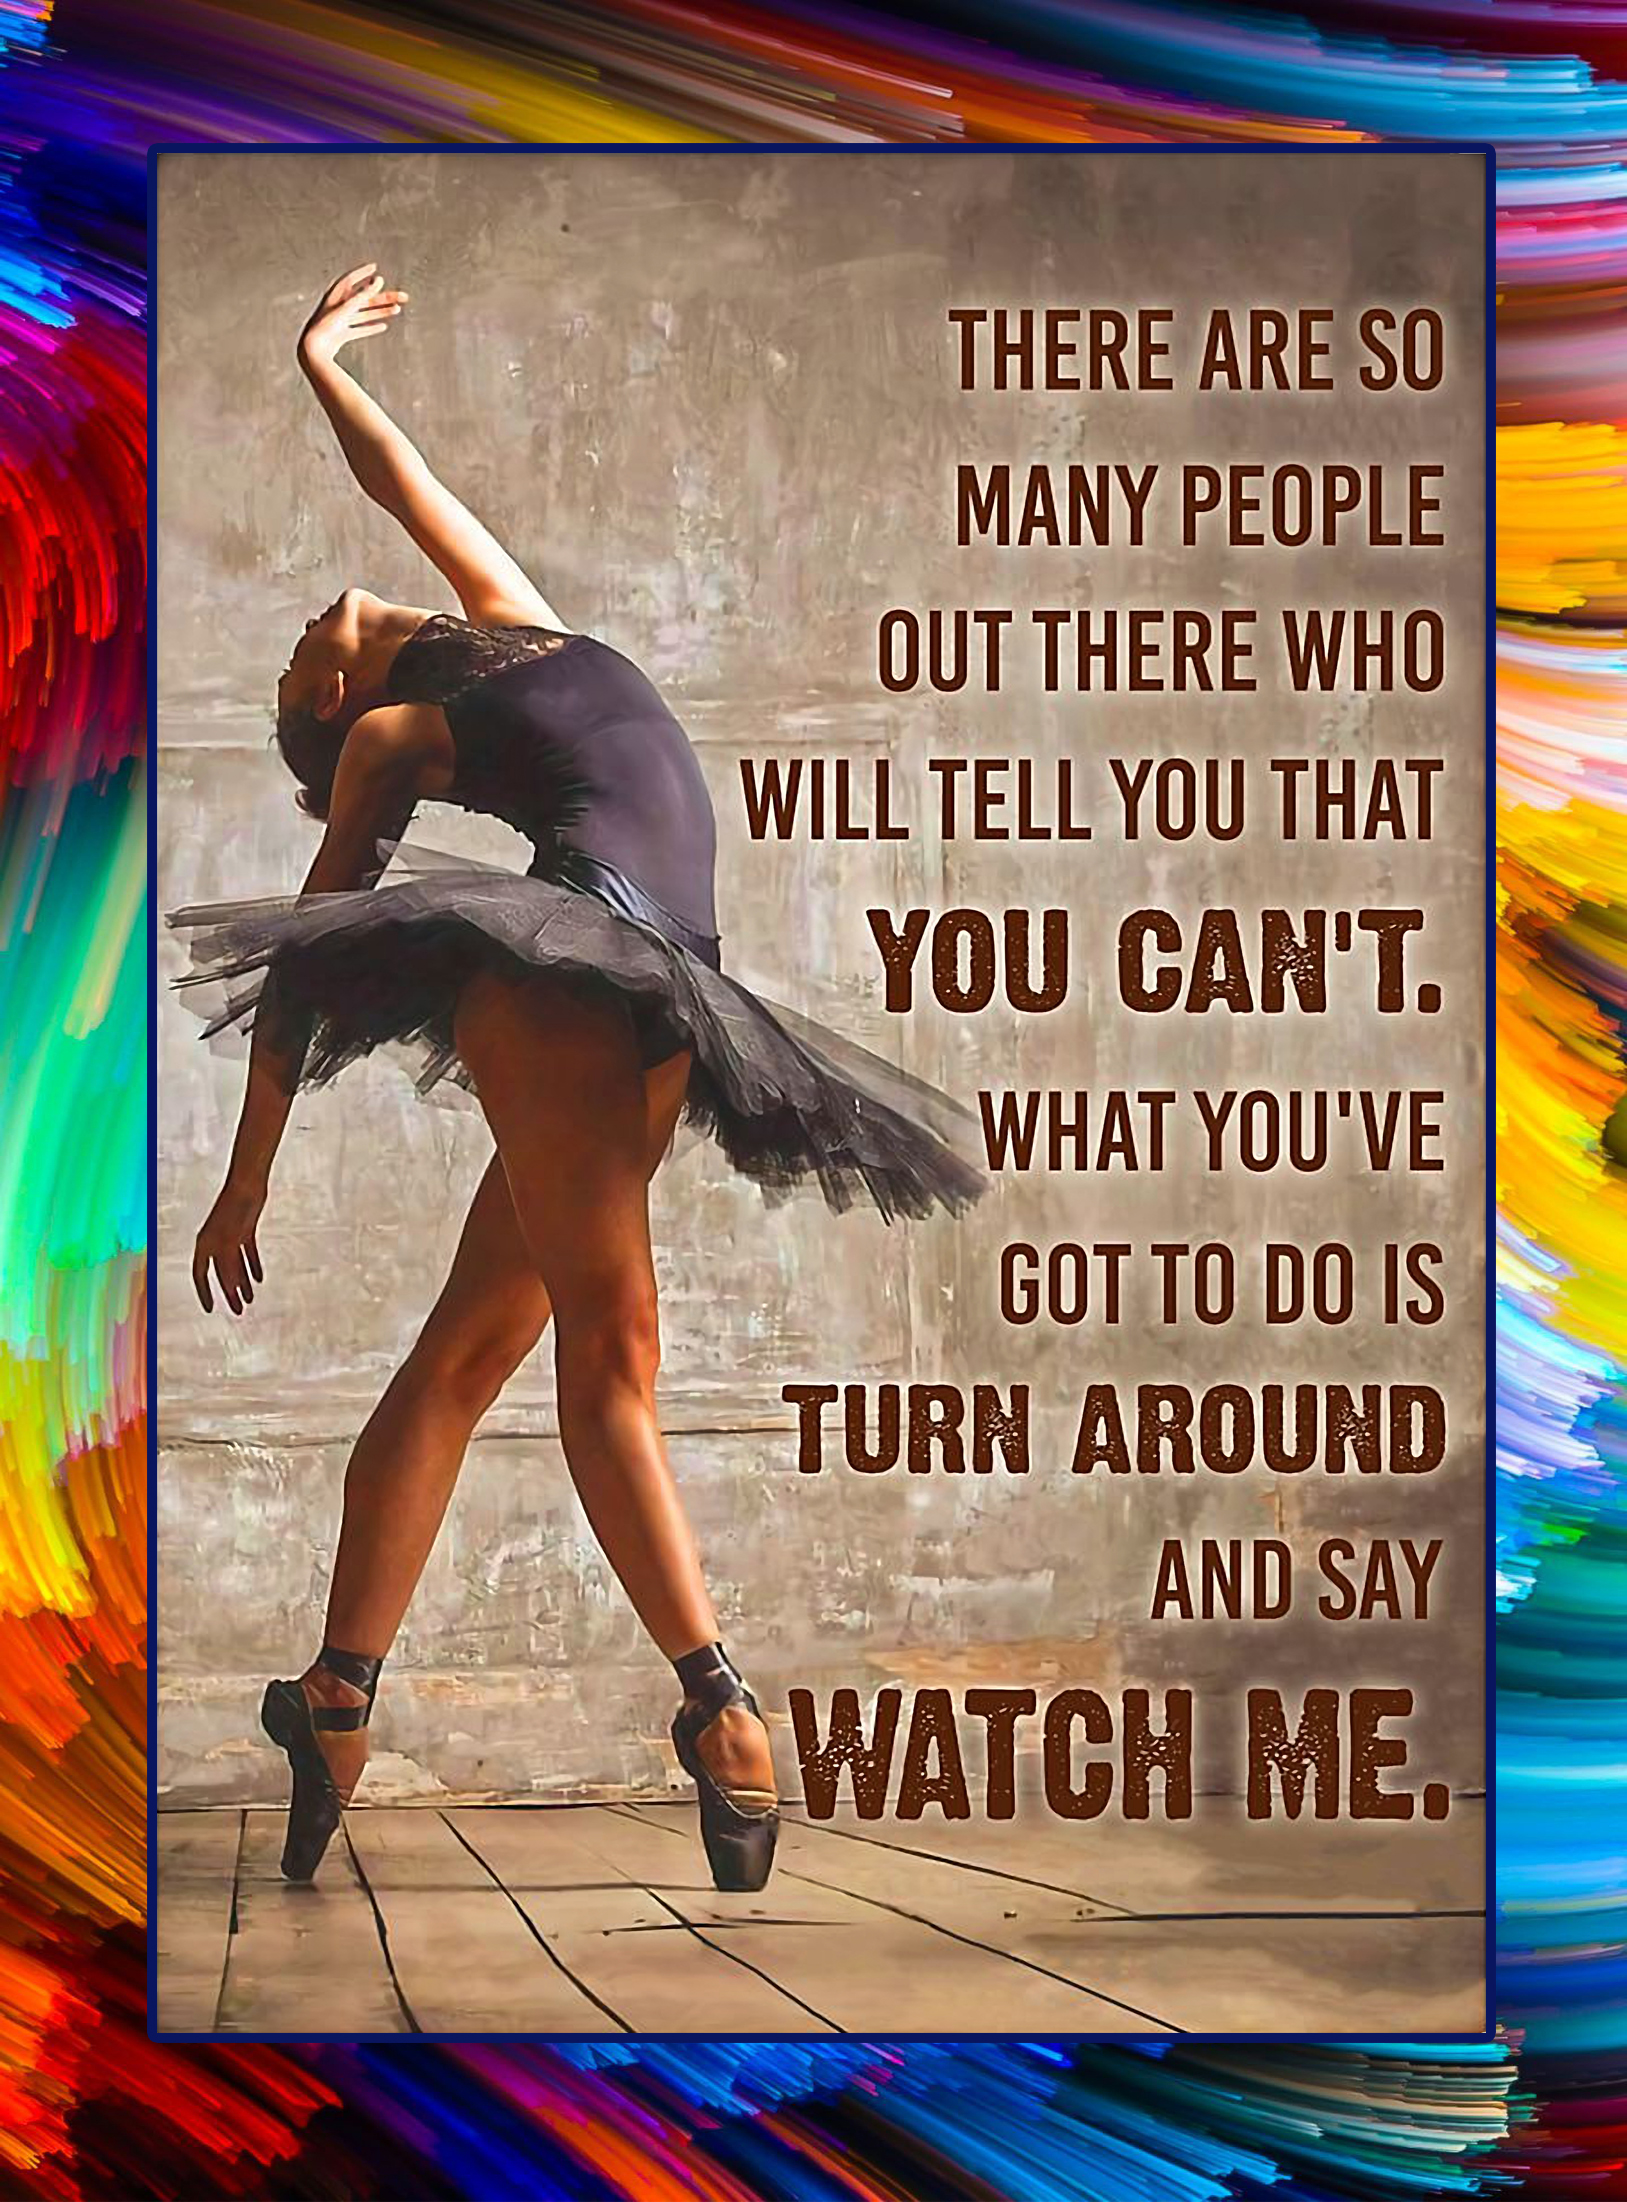 Ballet dancer there are so many people out there poster